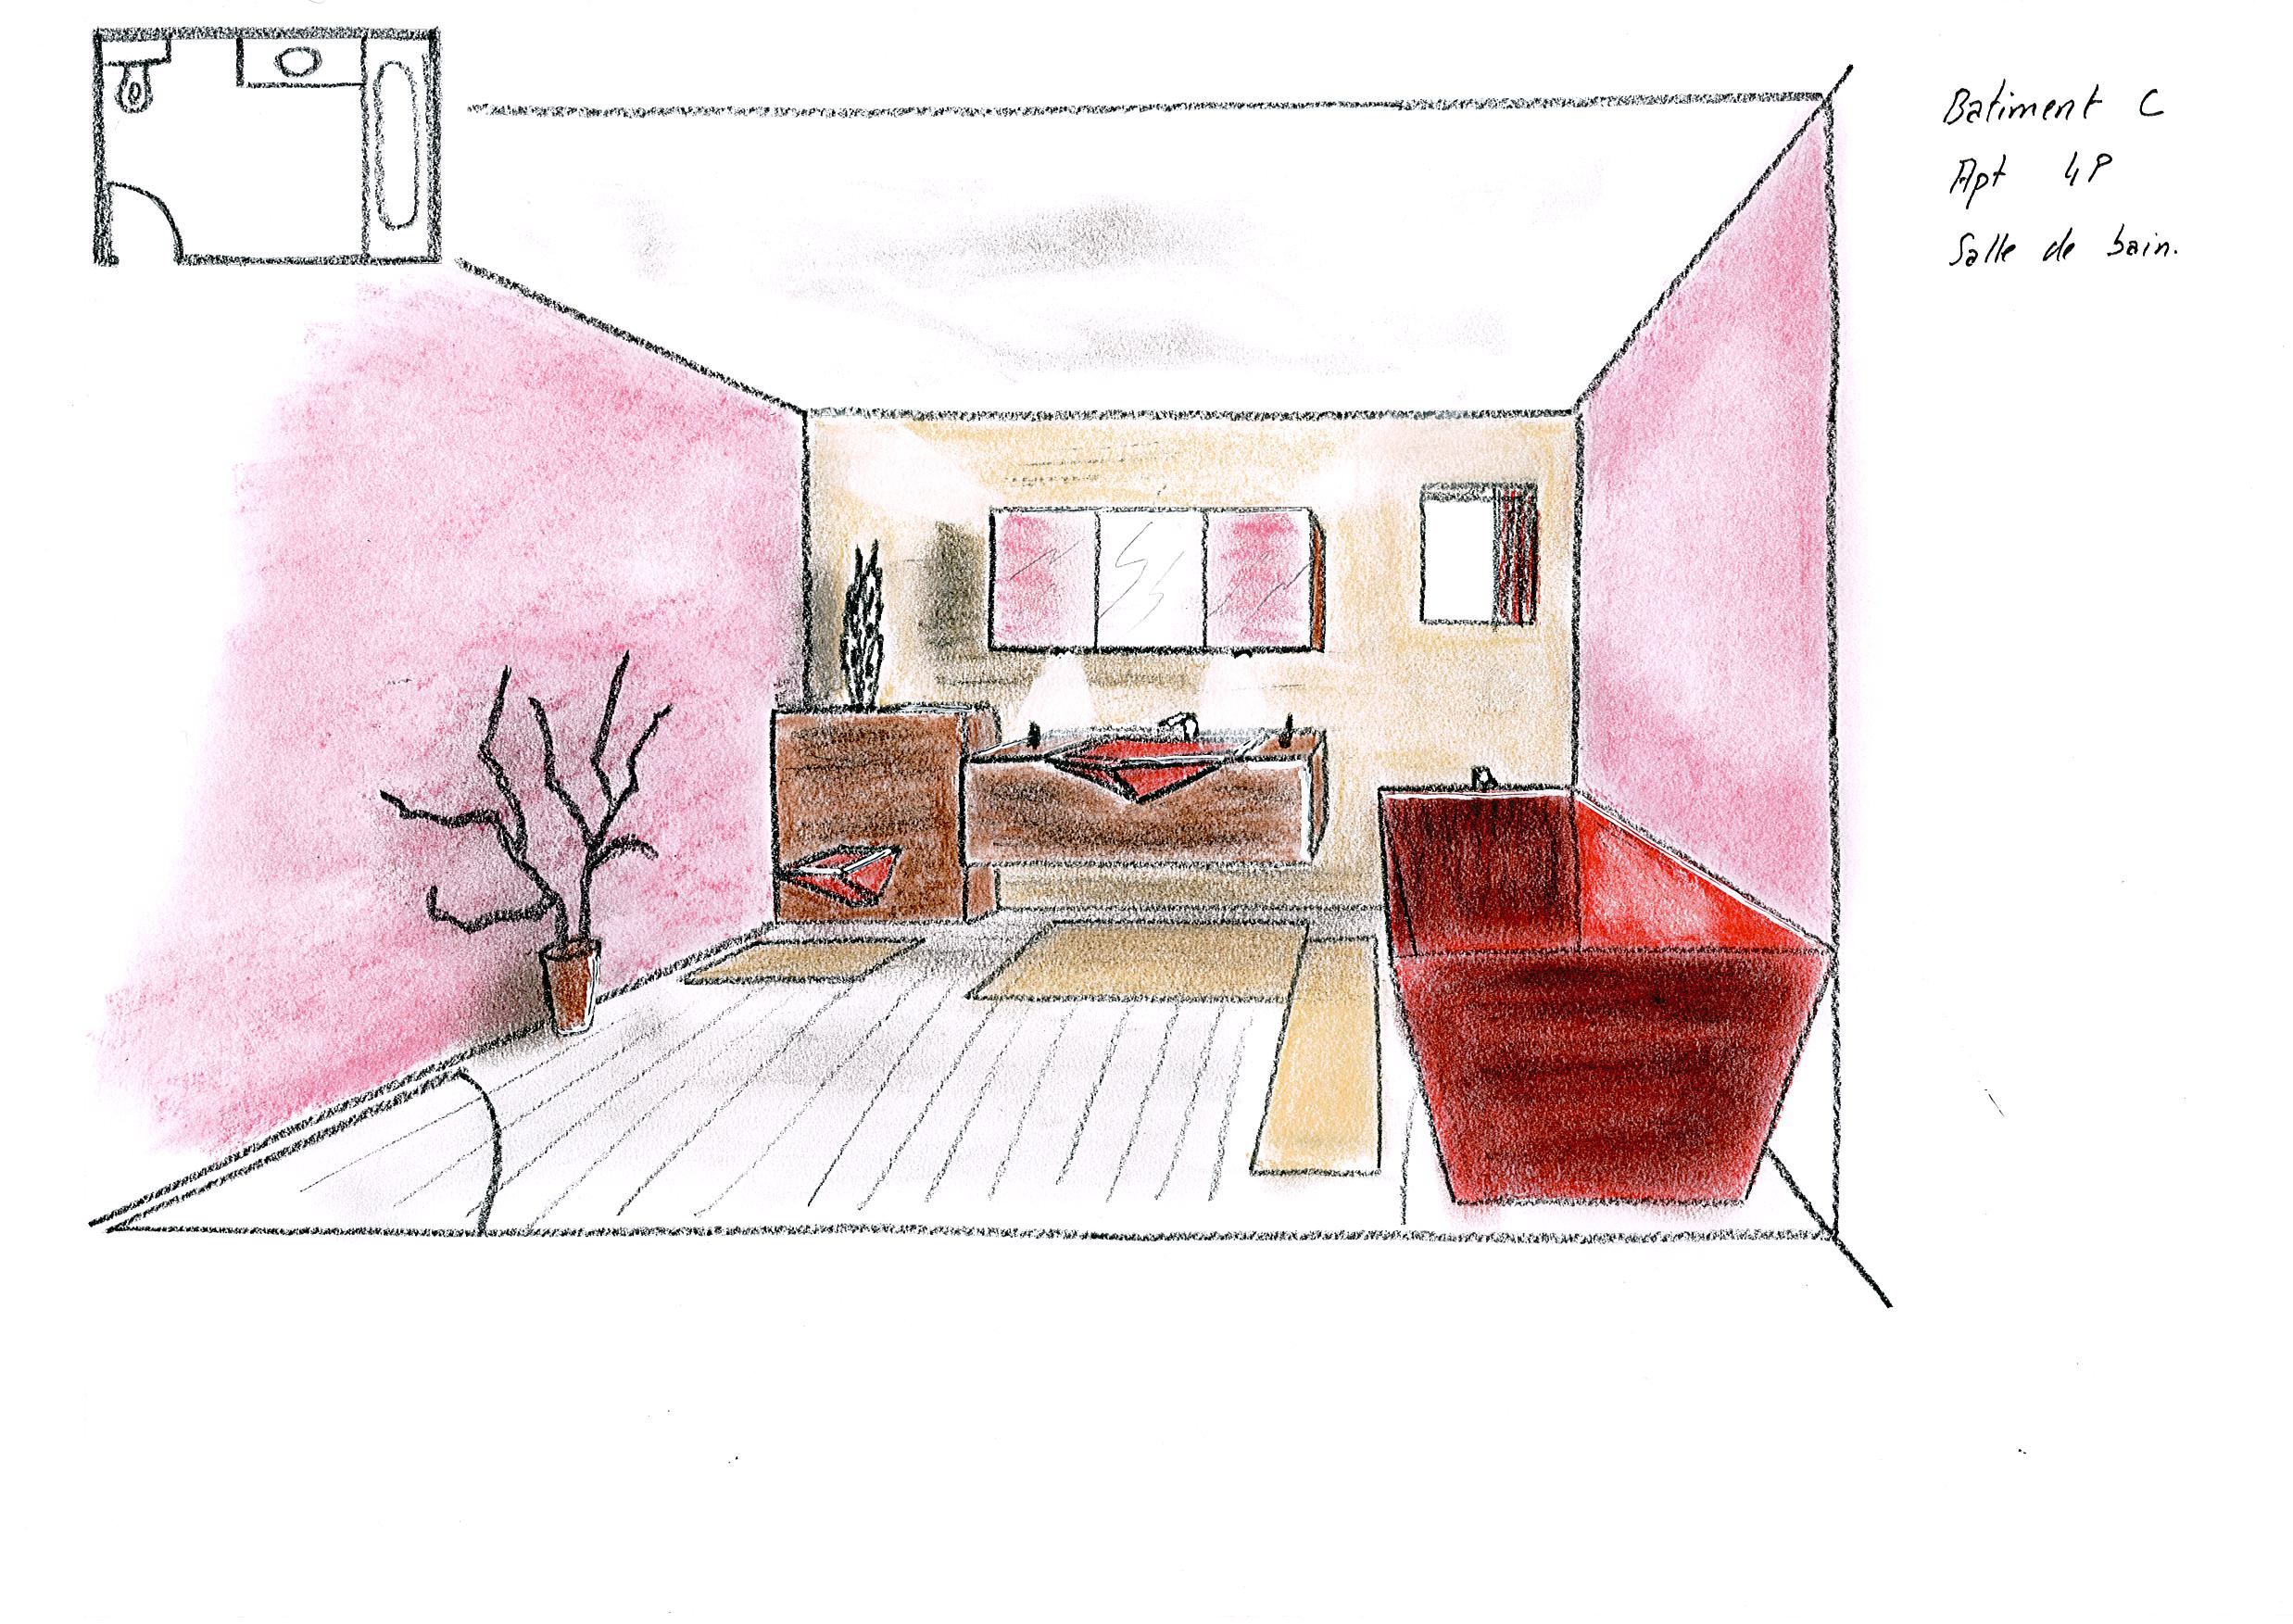 Dessins d architecture int rieure esquisses en for Dessin architecture interieur